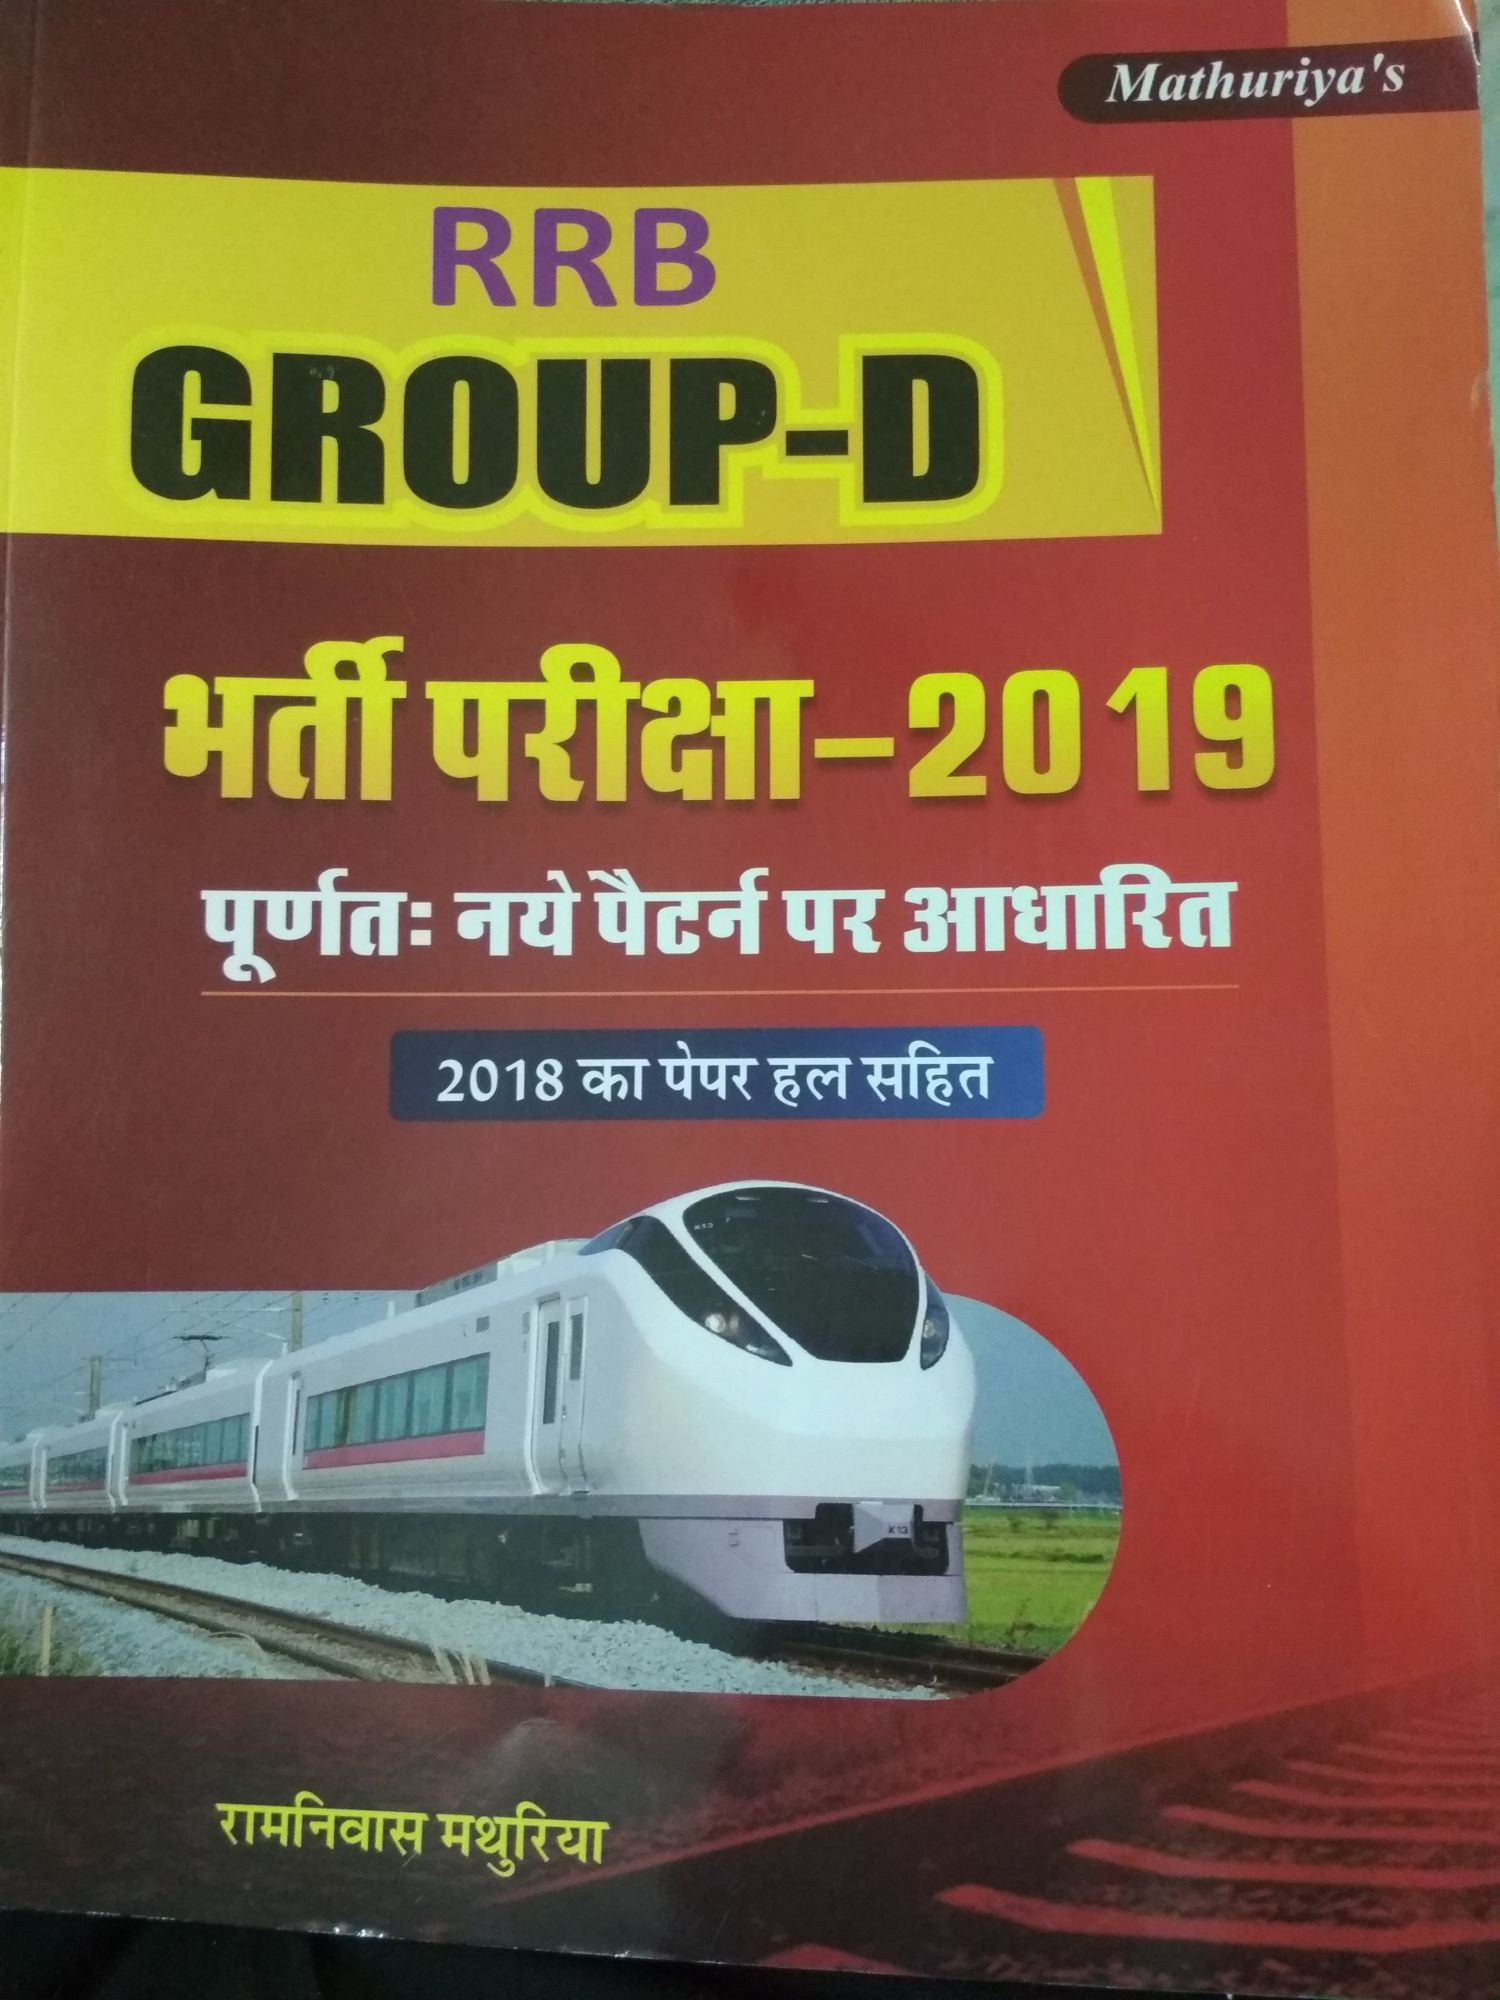 Rrb Group D RIlwah Book By Mathuriya  in hindi medium